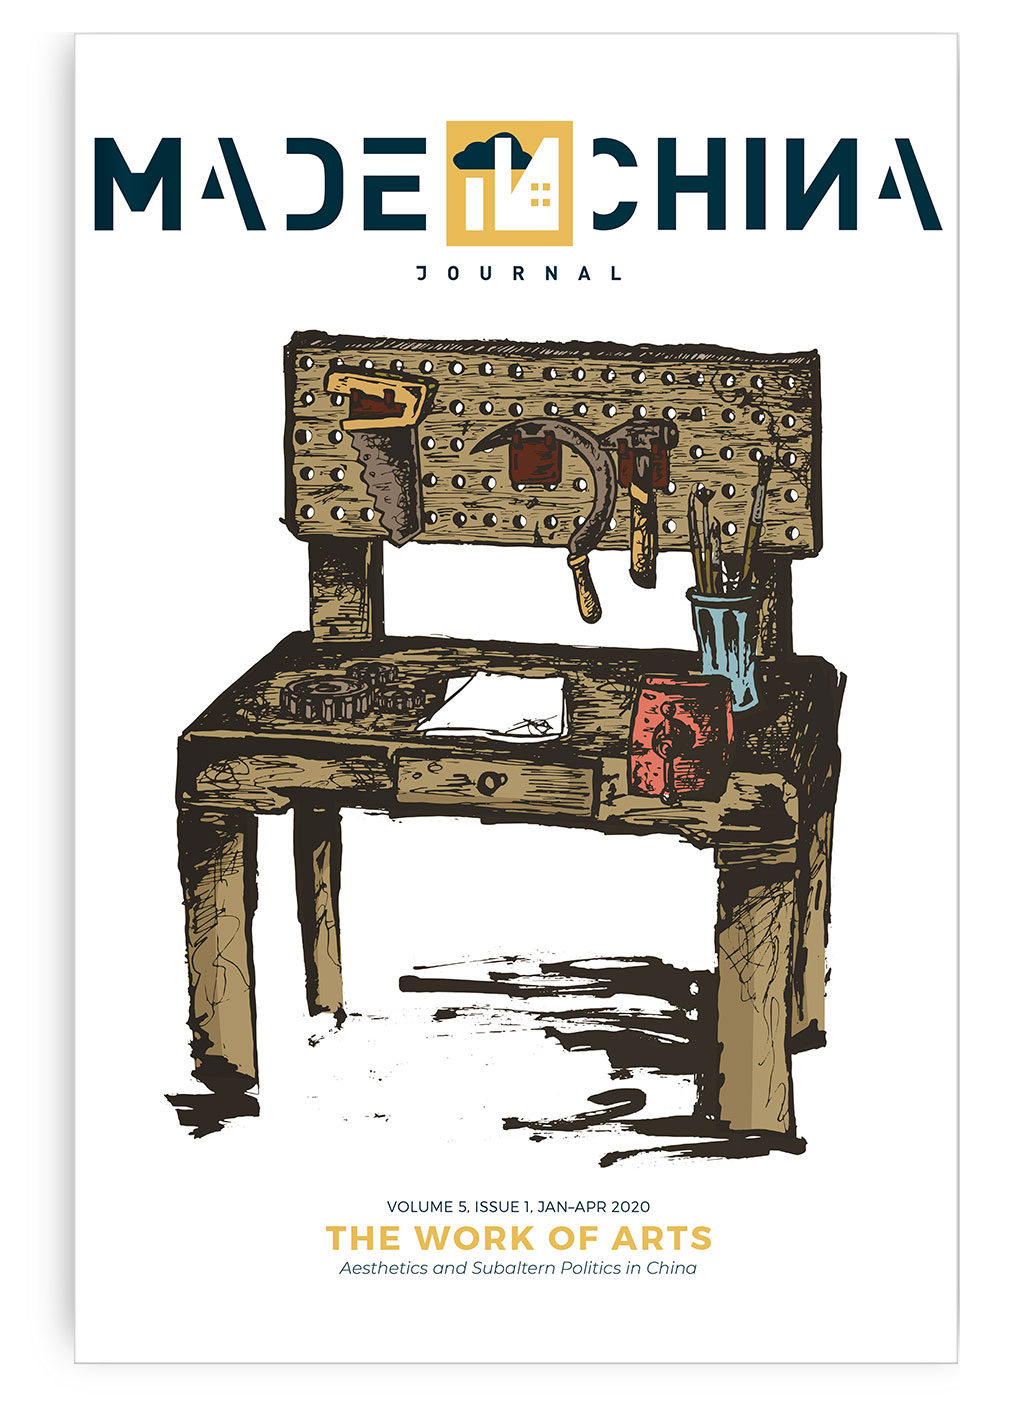 Made in China Journal: Volume 5, Issue 1, 2020